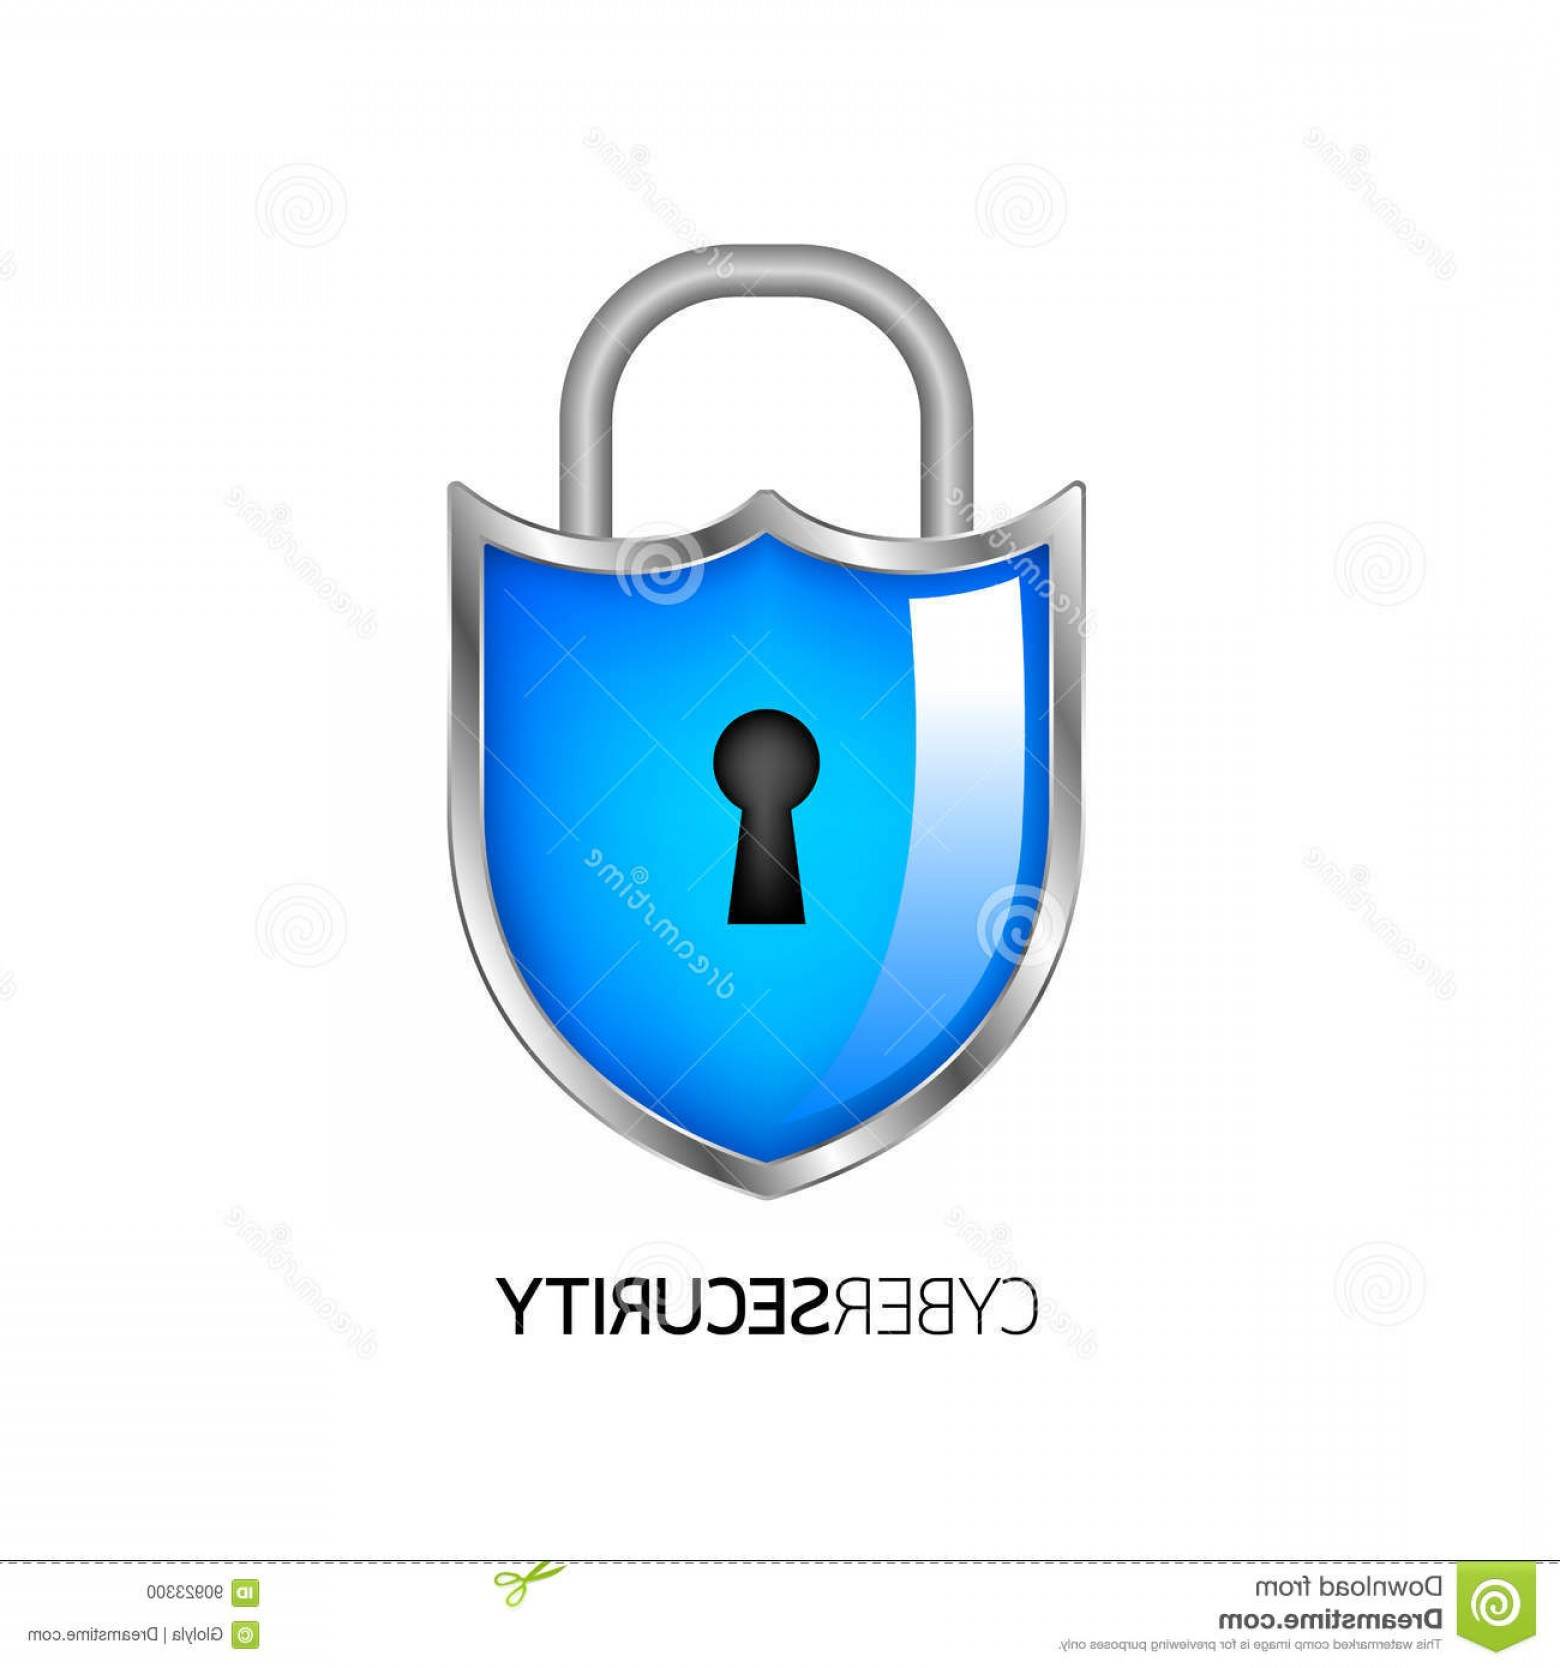 Cyber Defense Vector: Stock Illustration Cyber Security Logo Design Guard Concept Shield Lock Illustration Isolated White Background Image